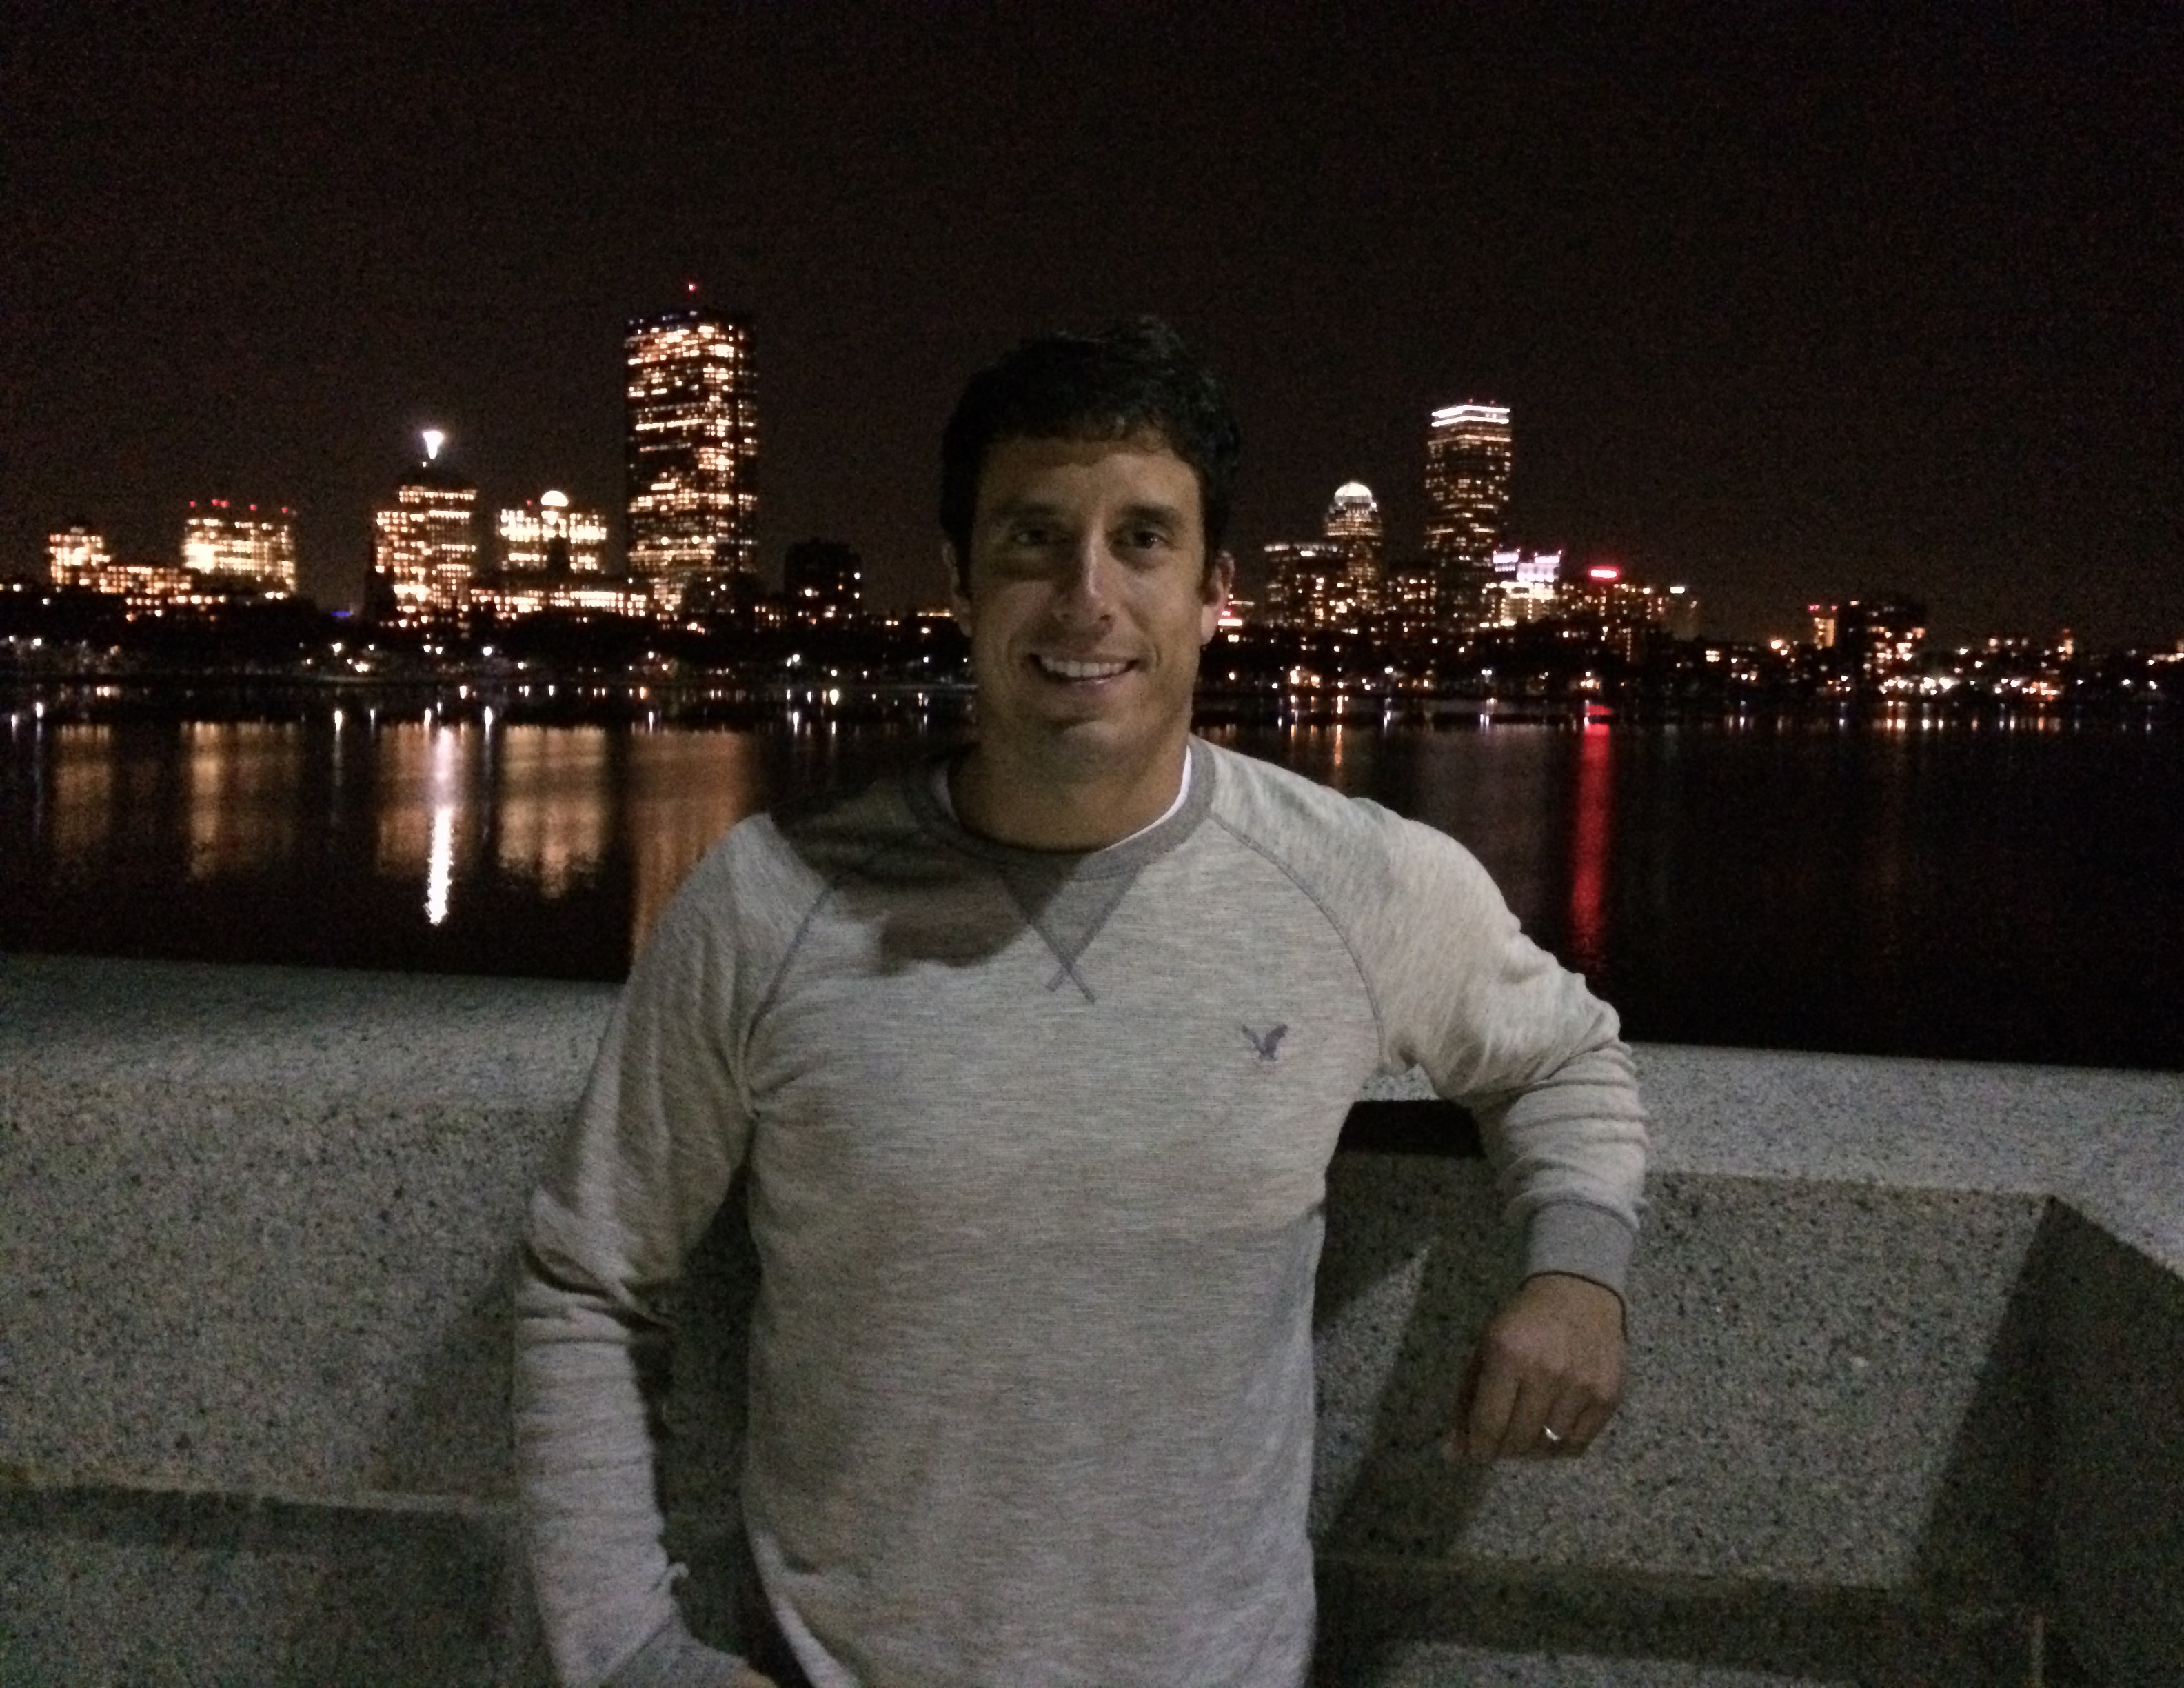 I had a great time exploring Boston last night. This is me on the Longfellow bridge with the city skyline behind me.